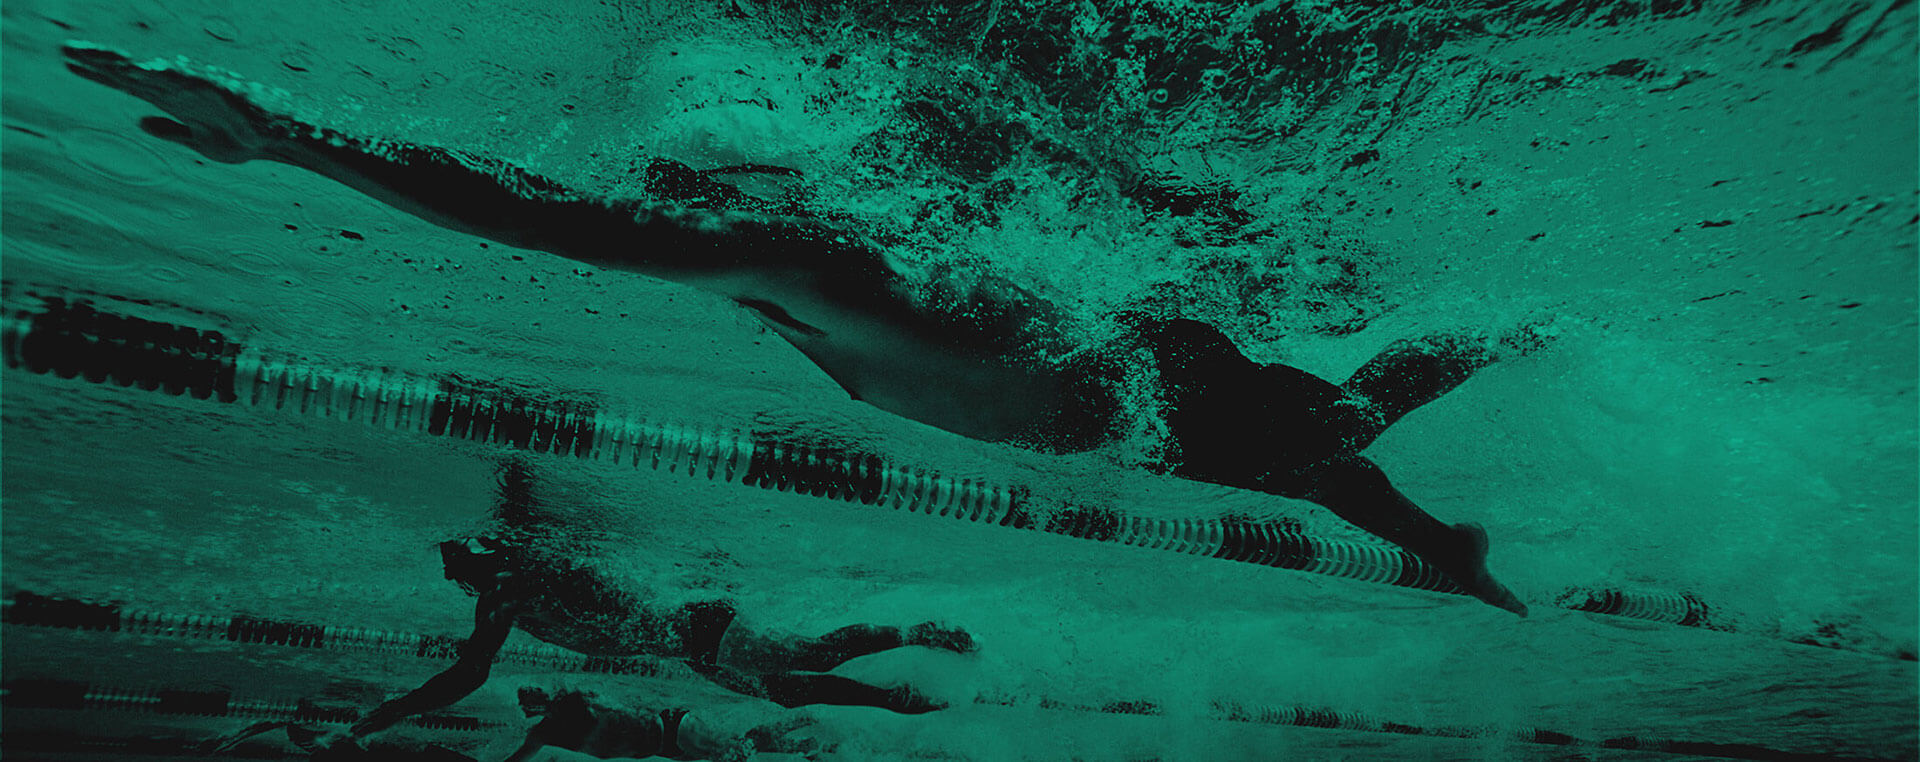 Green and black background image with a men in a swimming race